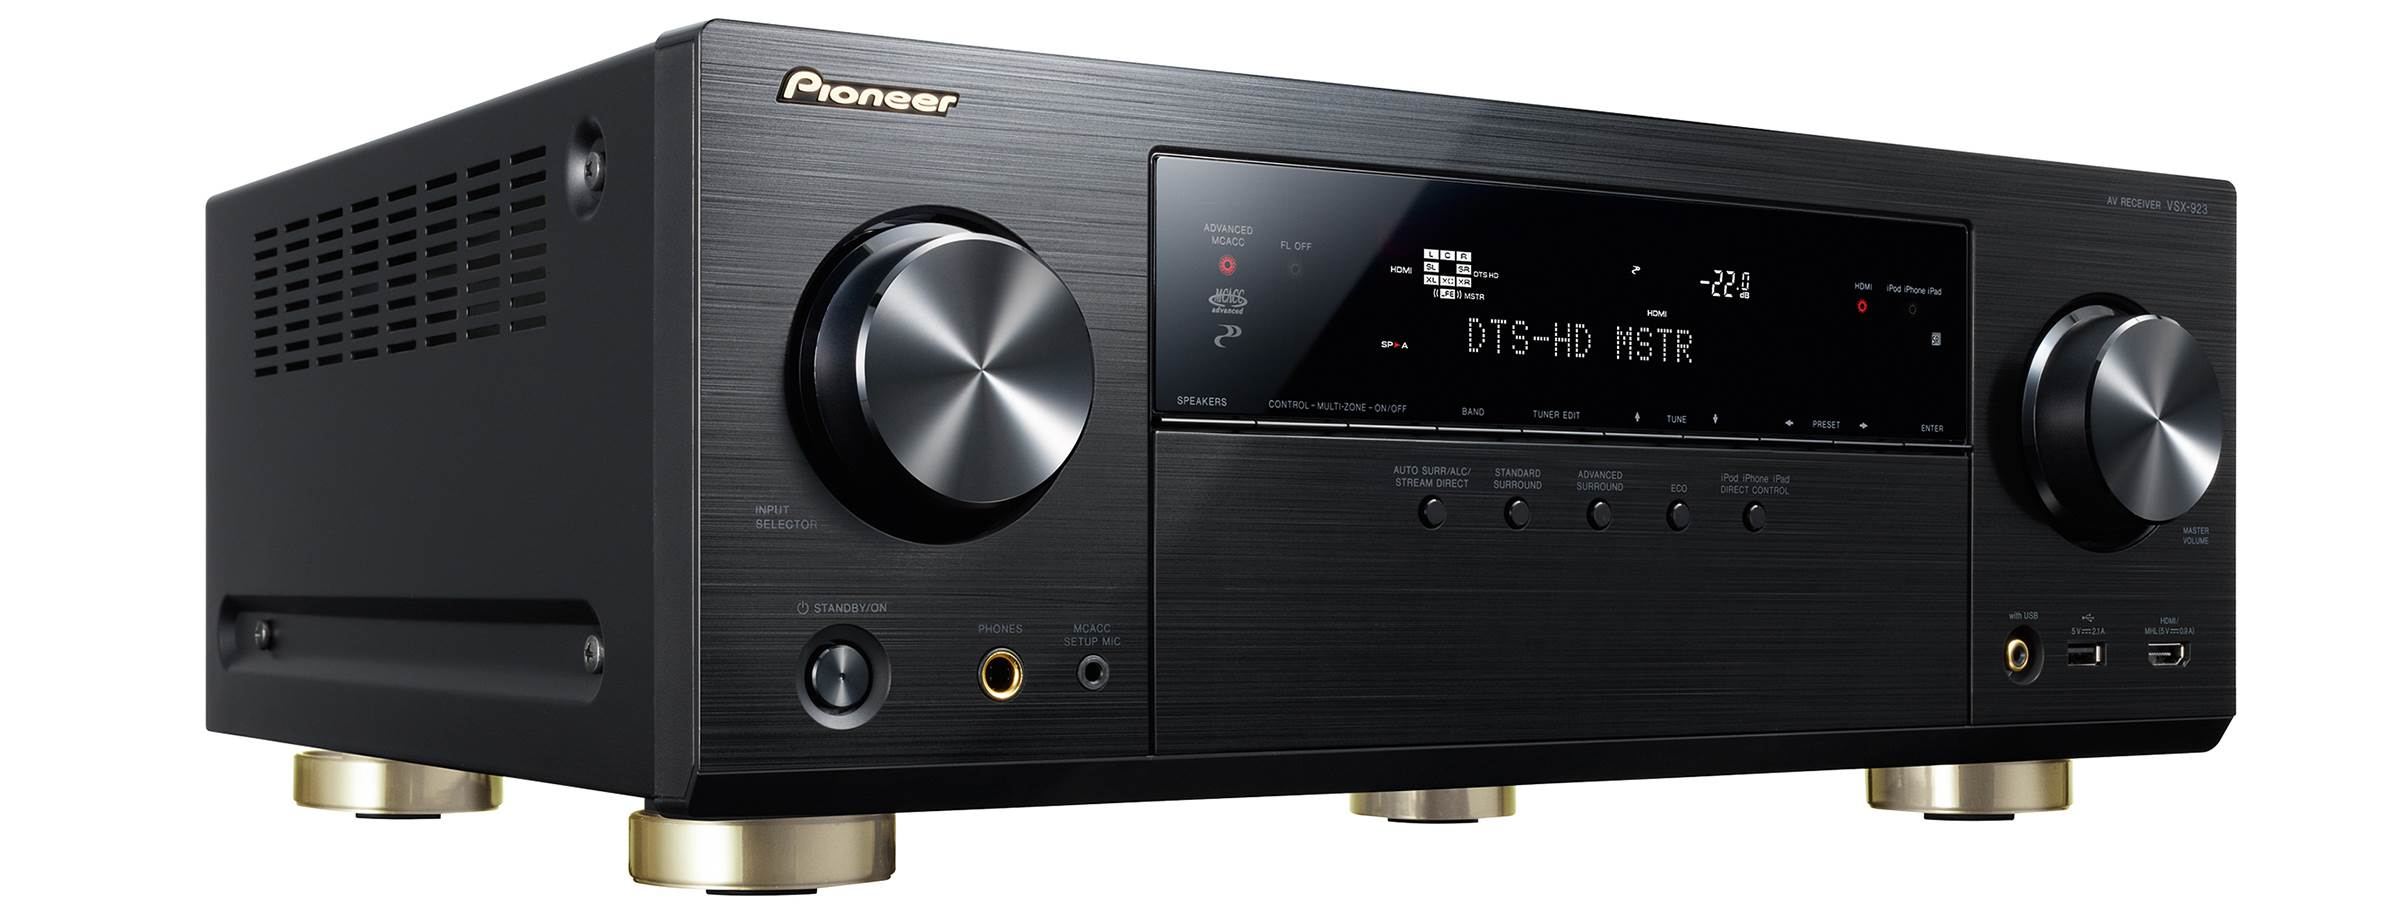 Pioneer-VSX-923-72-Home-Cinema-AV-Receiver-black.jpg